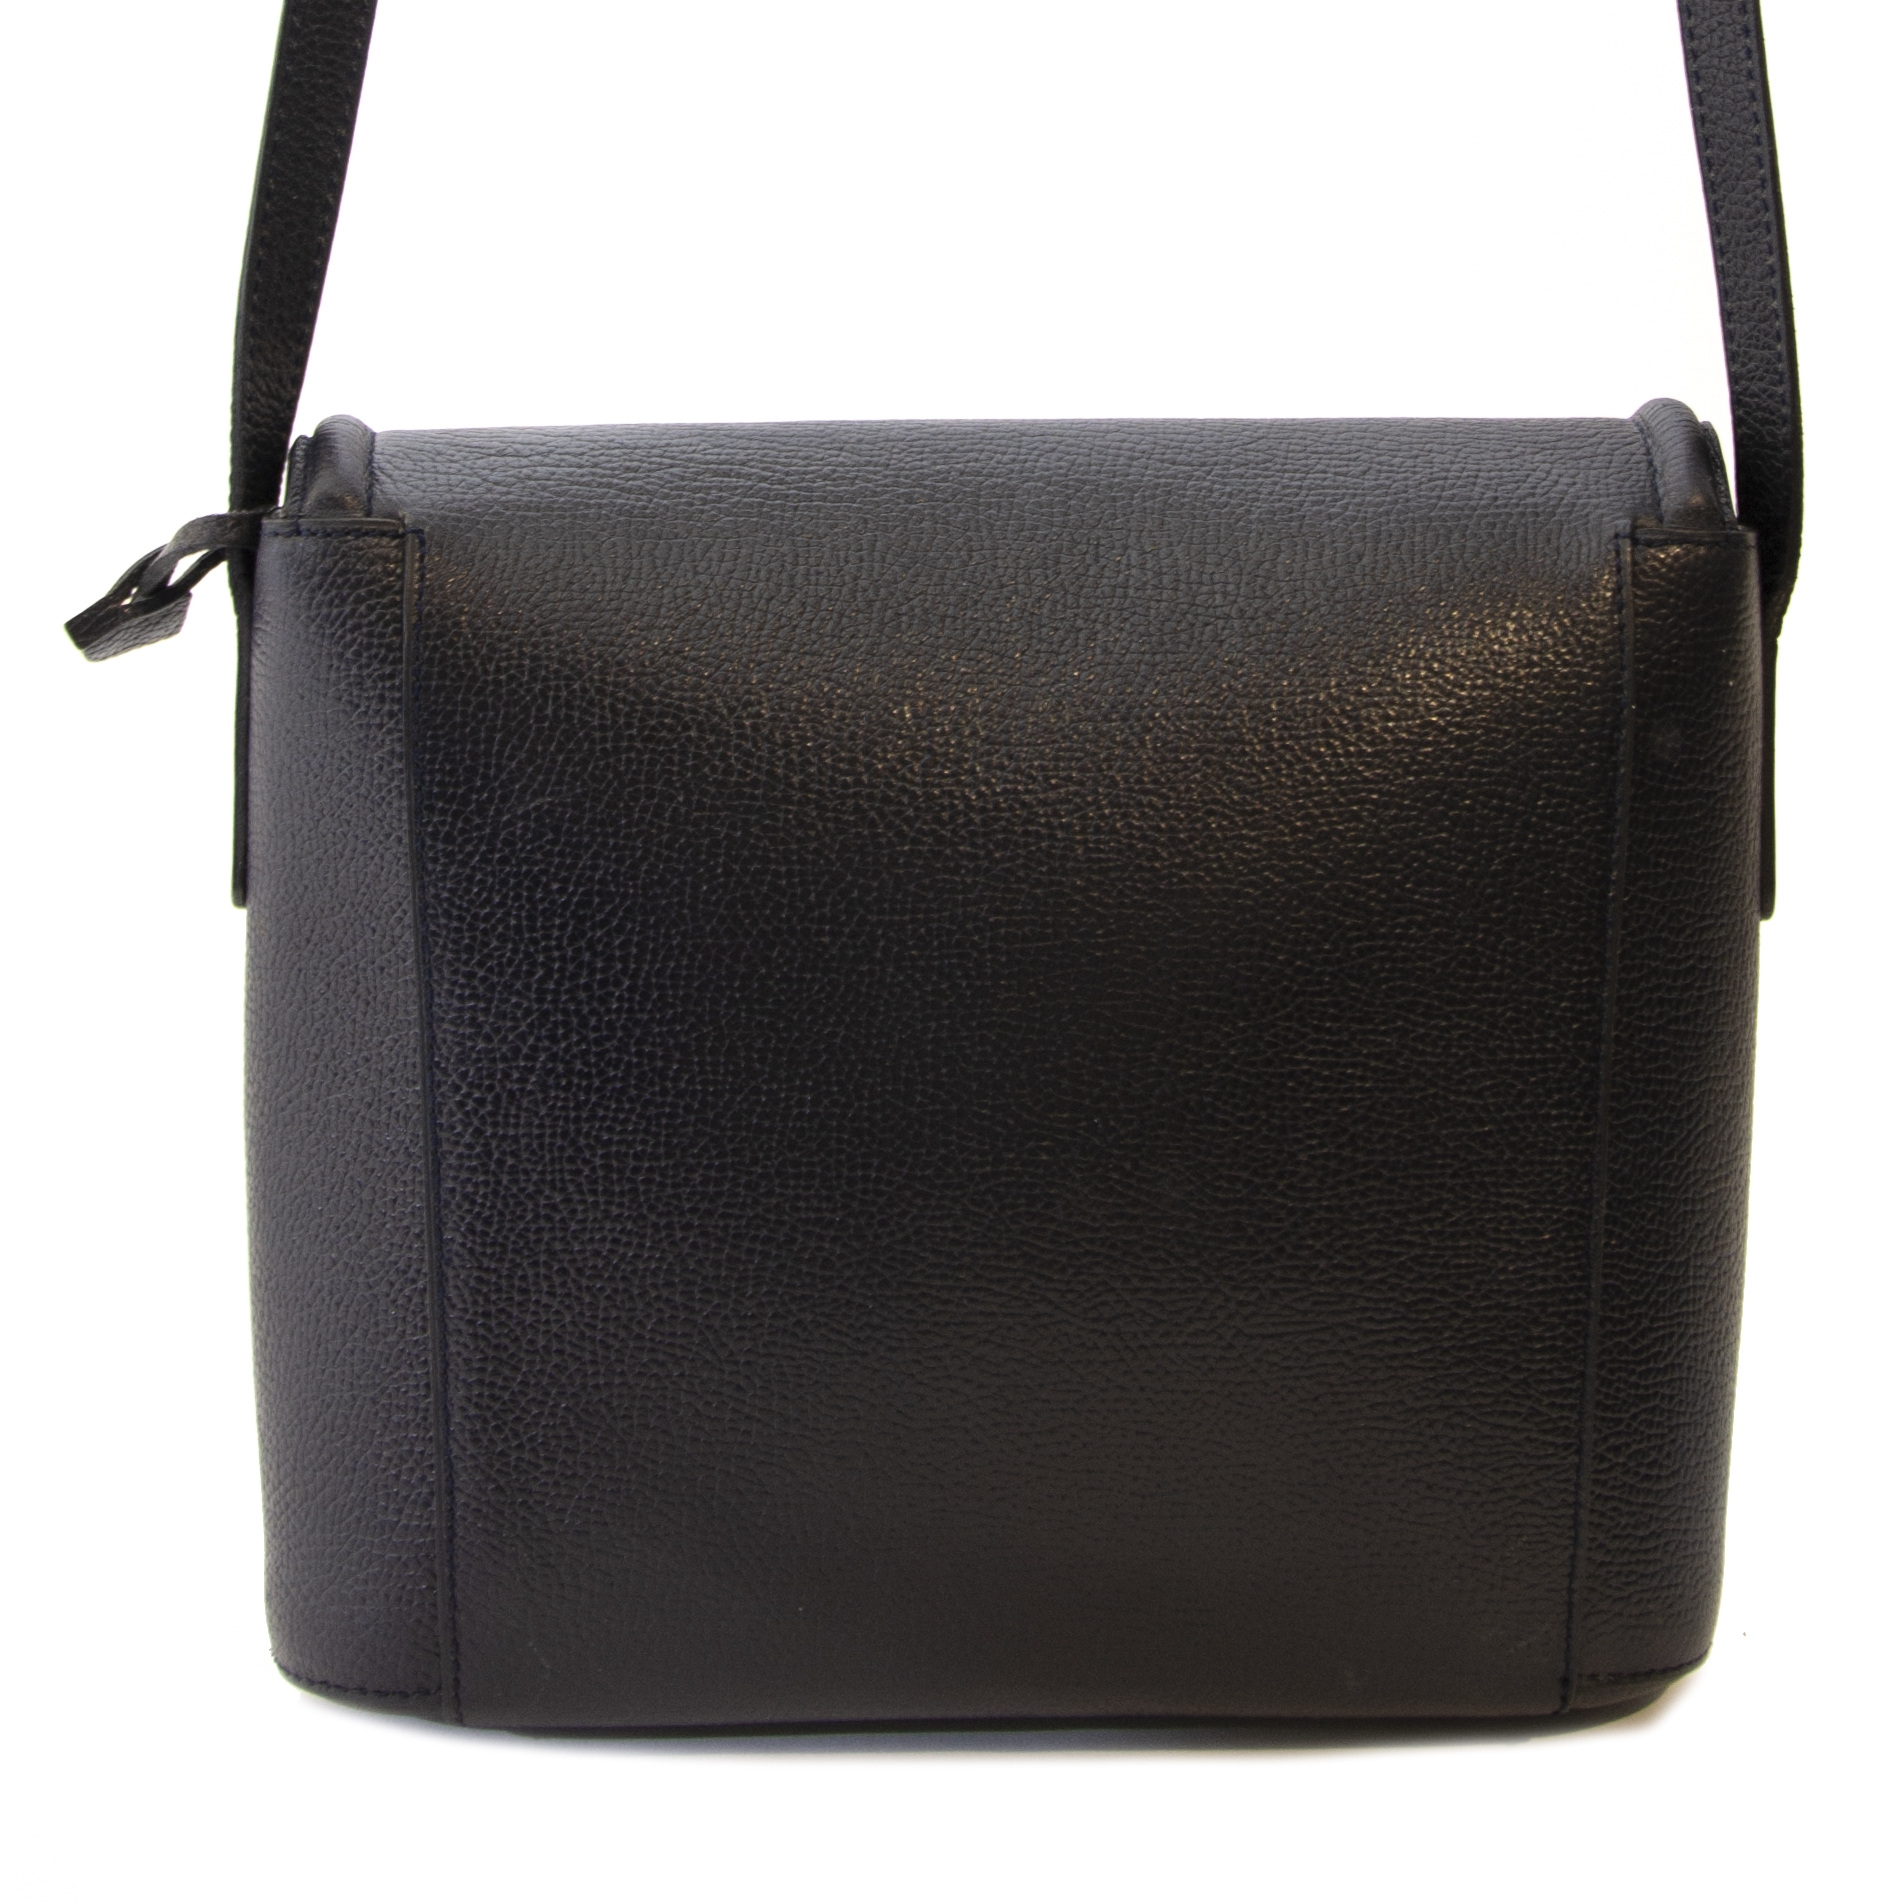 ... Authentique seconde main Delvaux Dark Blue Leather Crossbody Bag achète  en ligne webshop LabelLOV 15453f9c85a7a